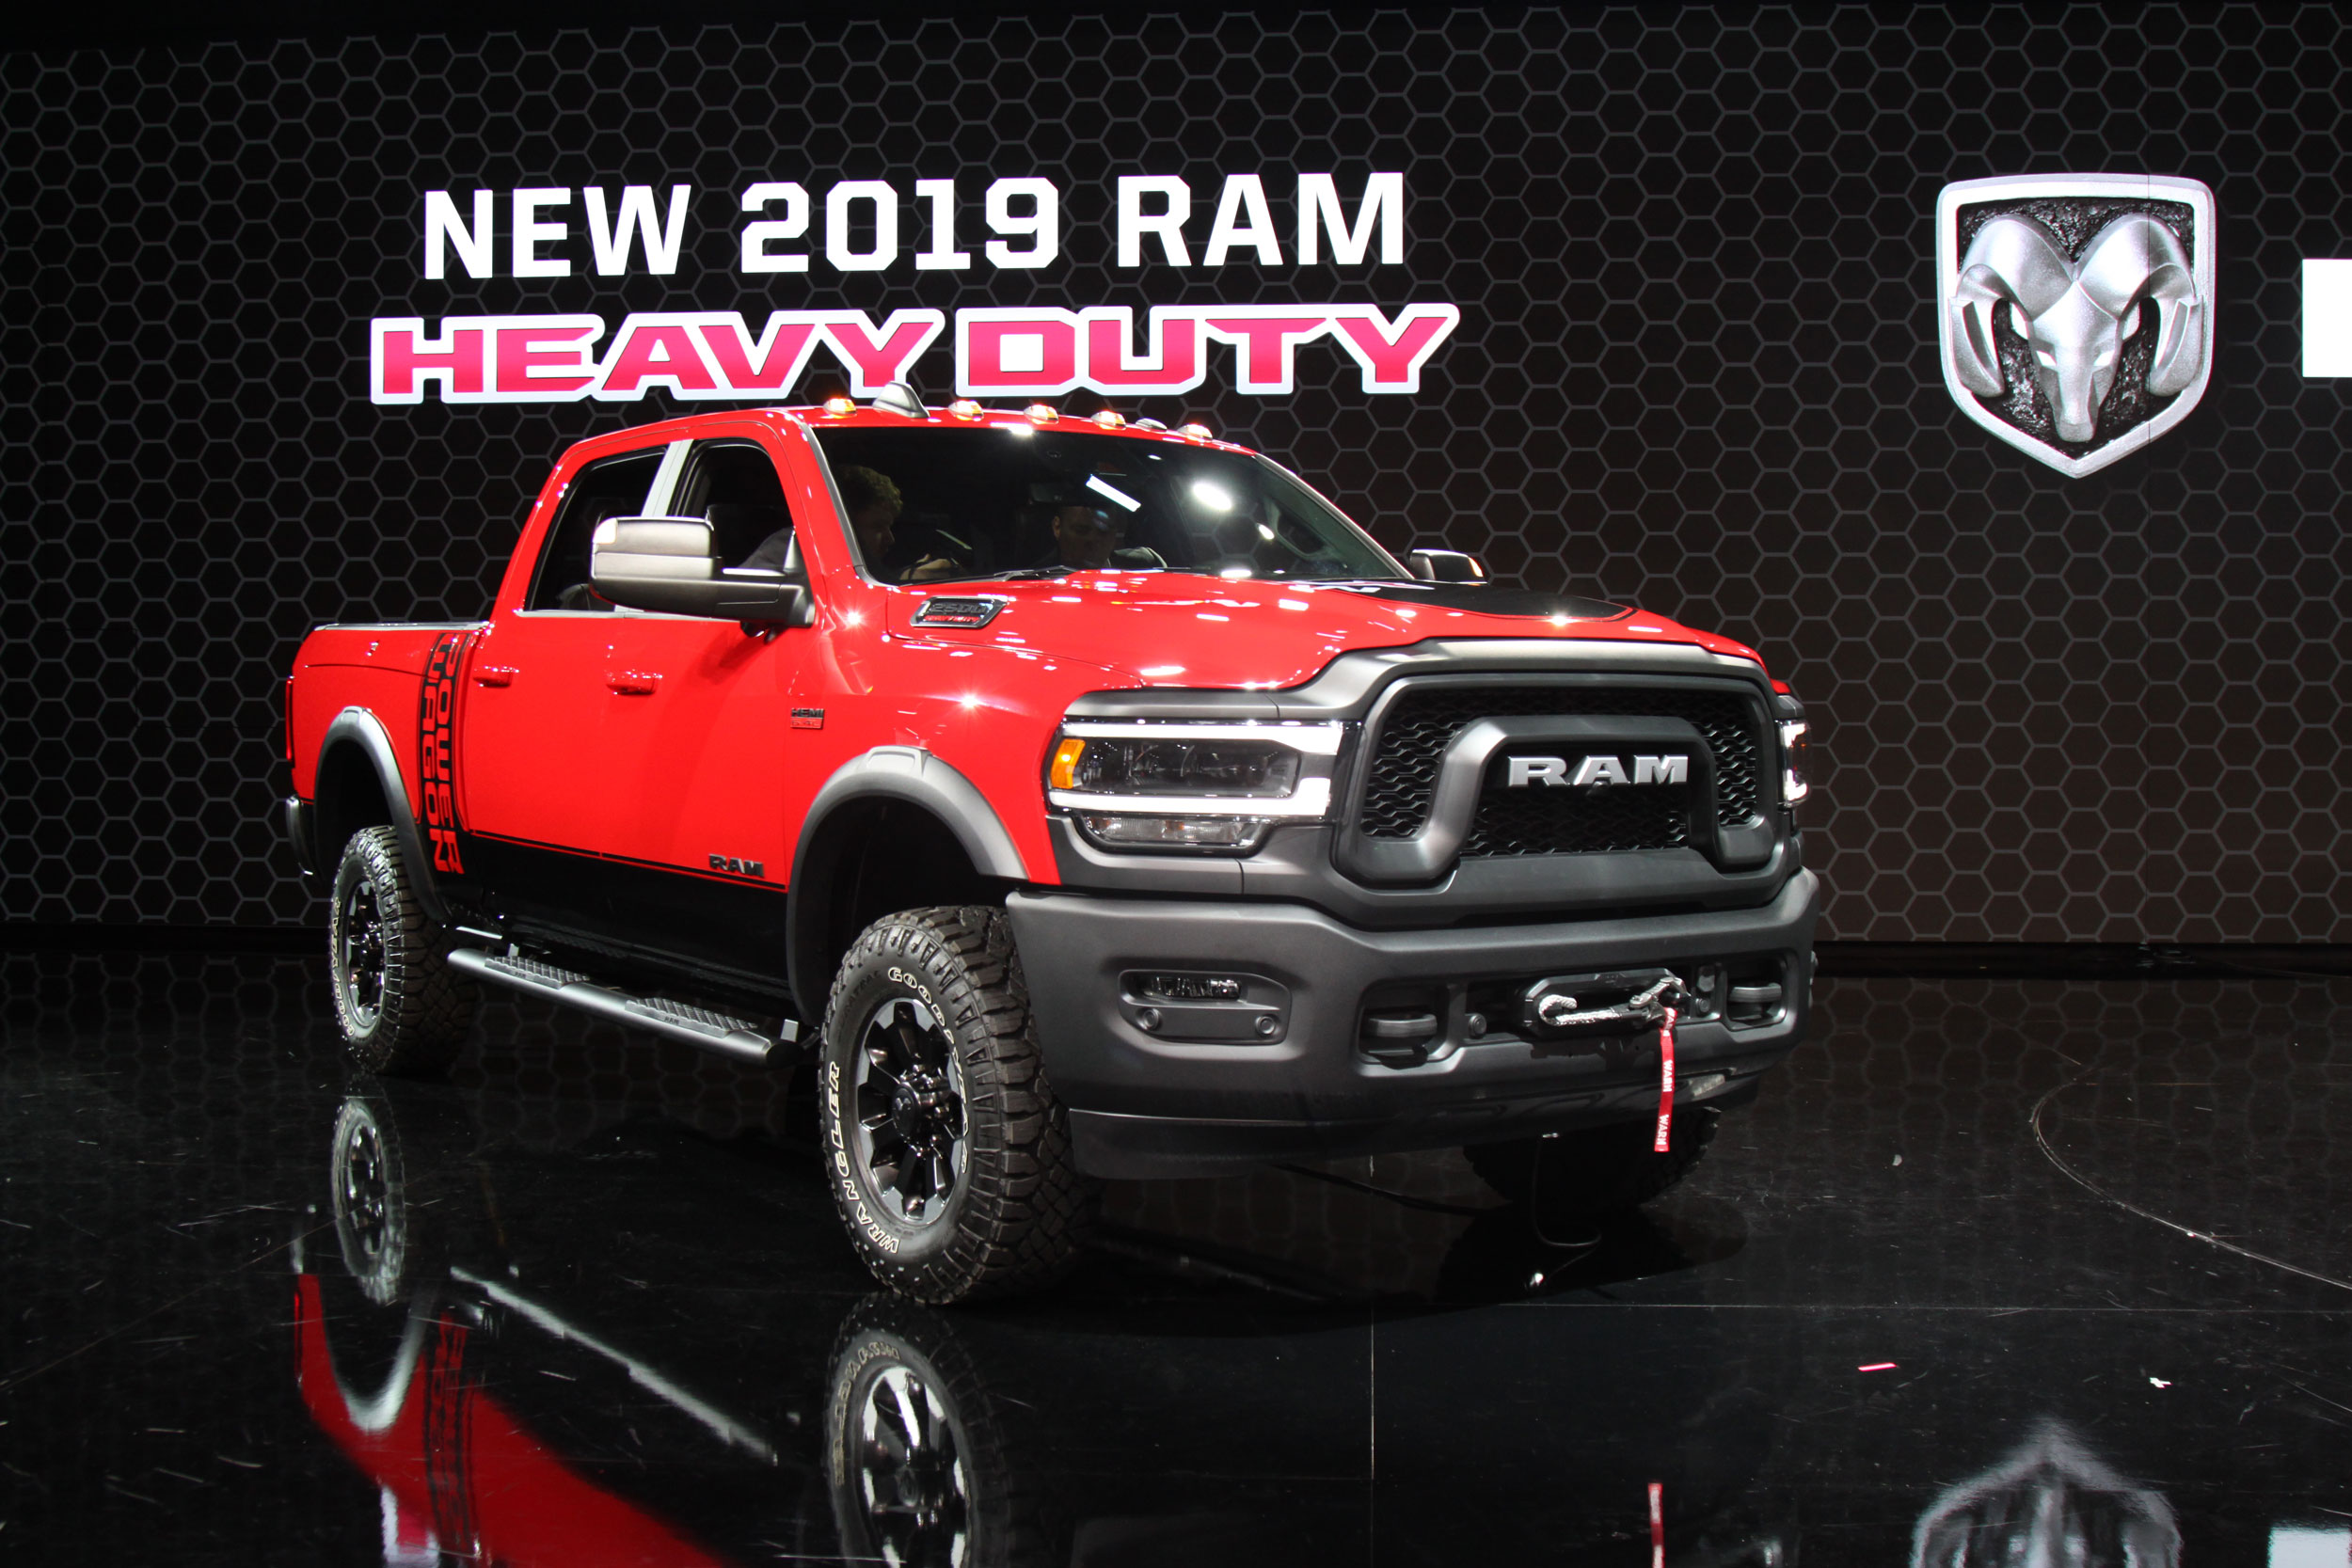 2019 RAM Power Wagon at the NAIAS